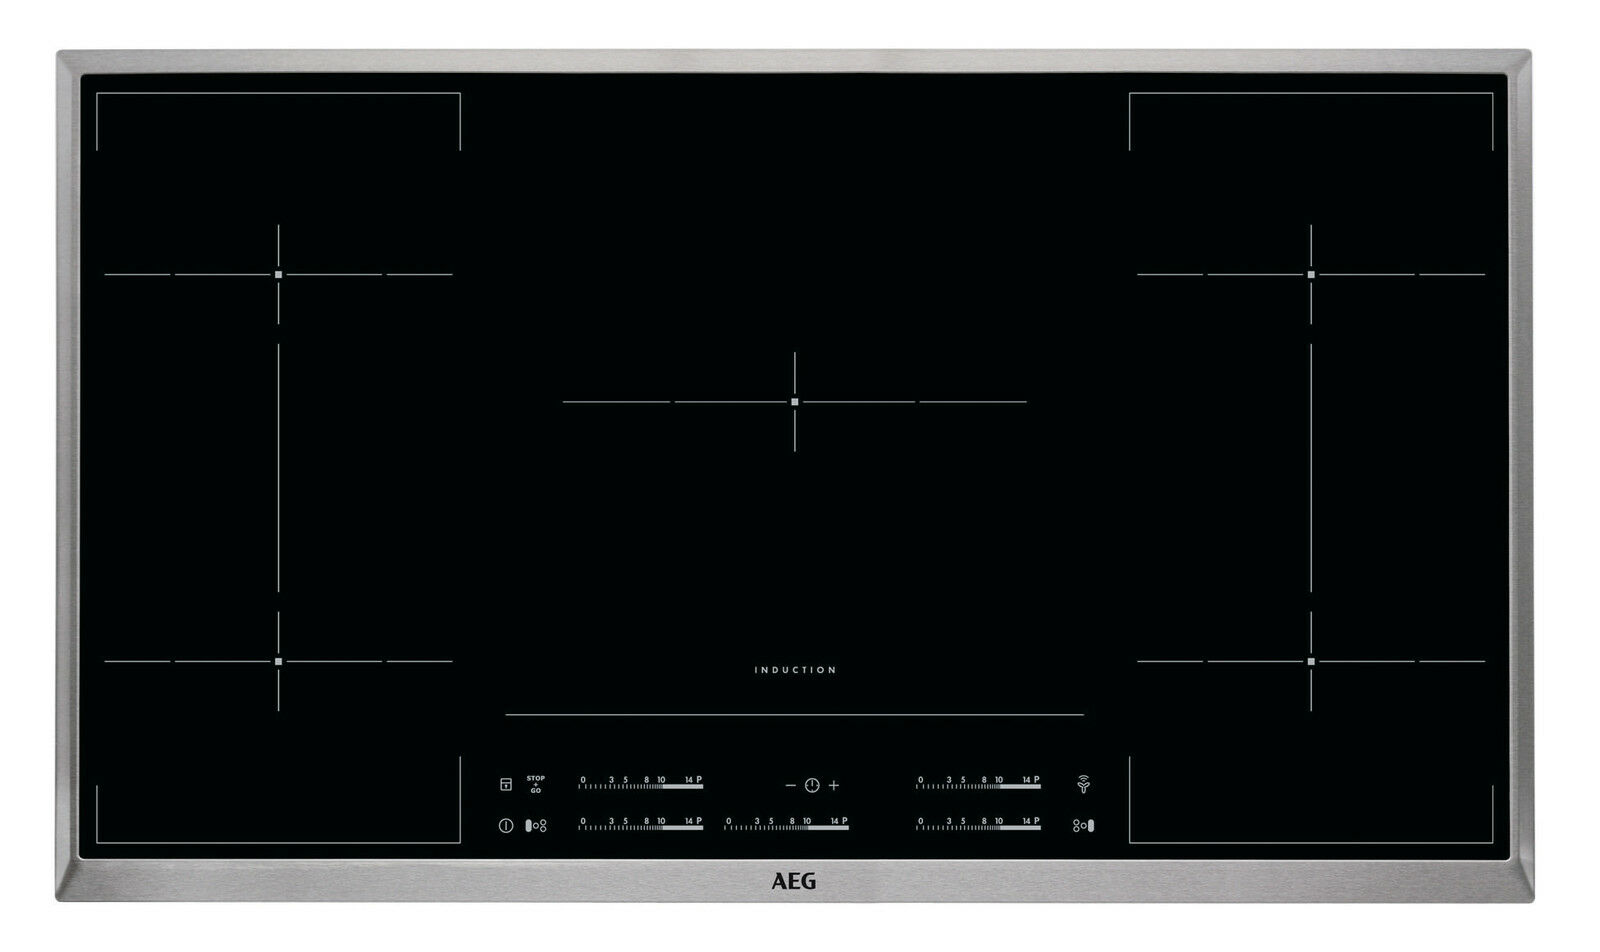 aeg hkm95513xb kochfeld induktion hob2hood funktion 90 cm edelstahlra eur 614 90. Black Bedroom Furniture Sets. Home Design Ideas